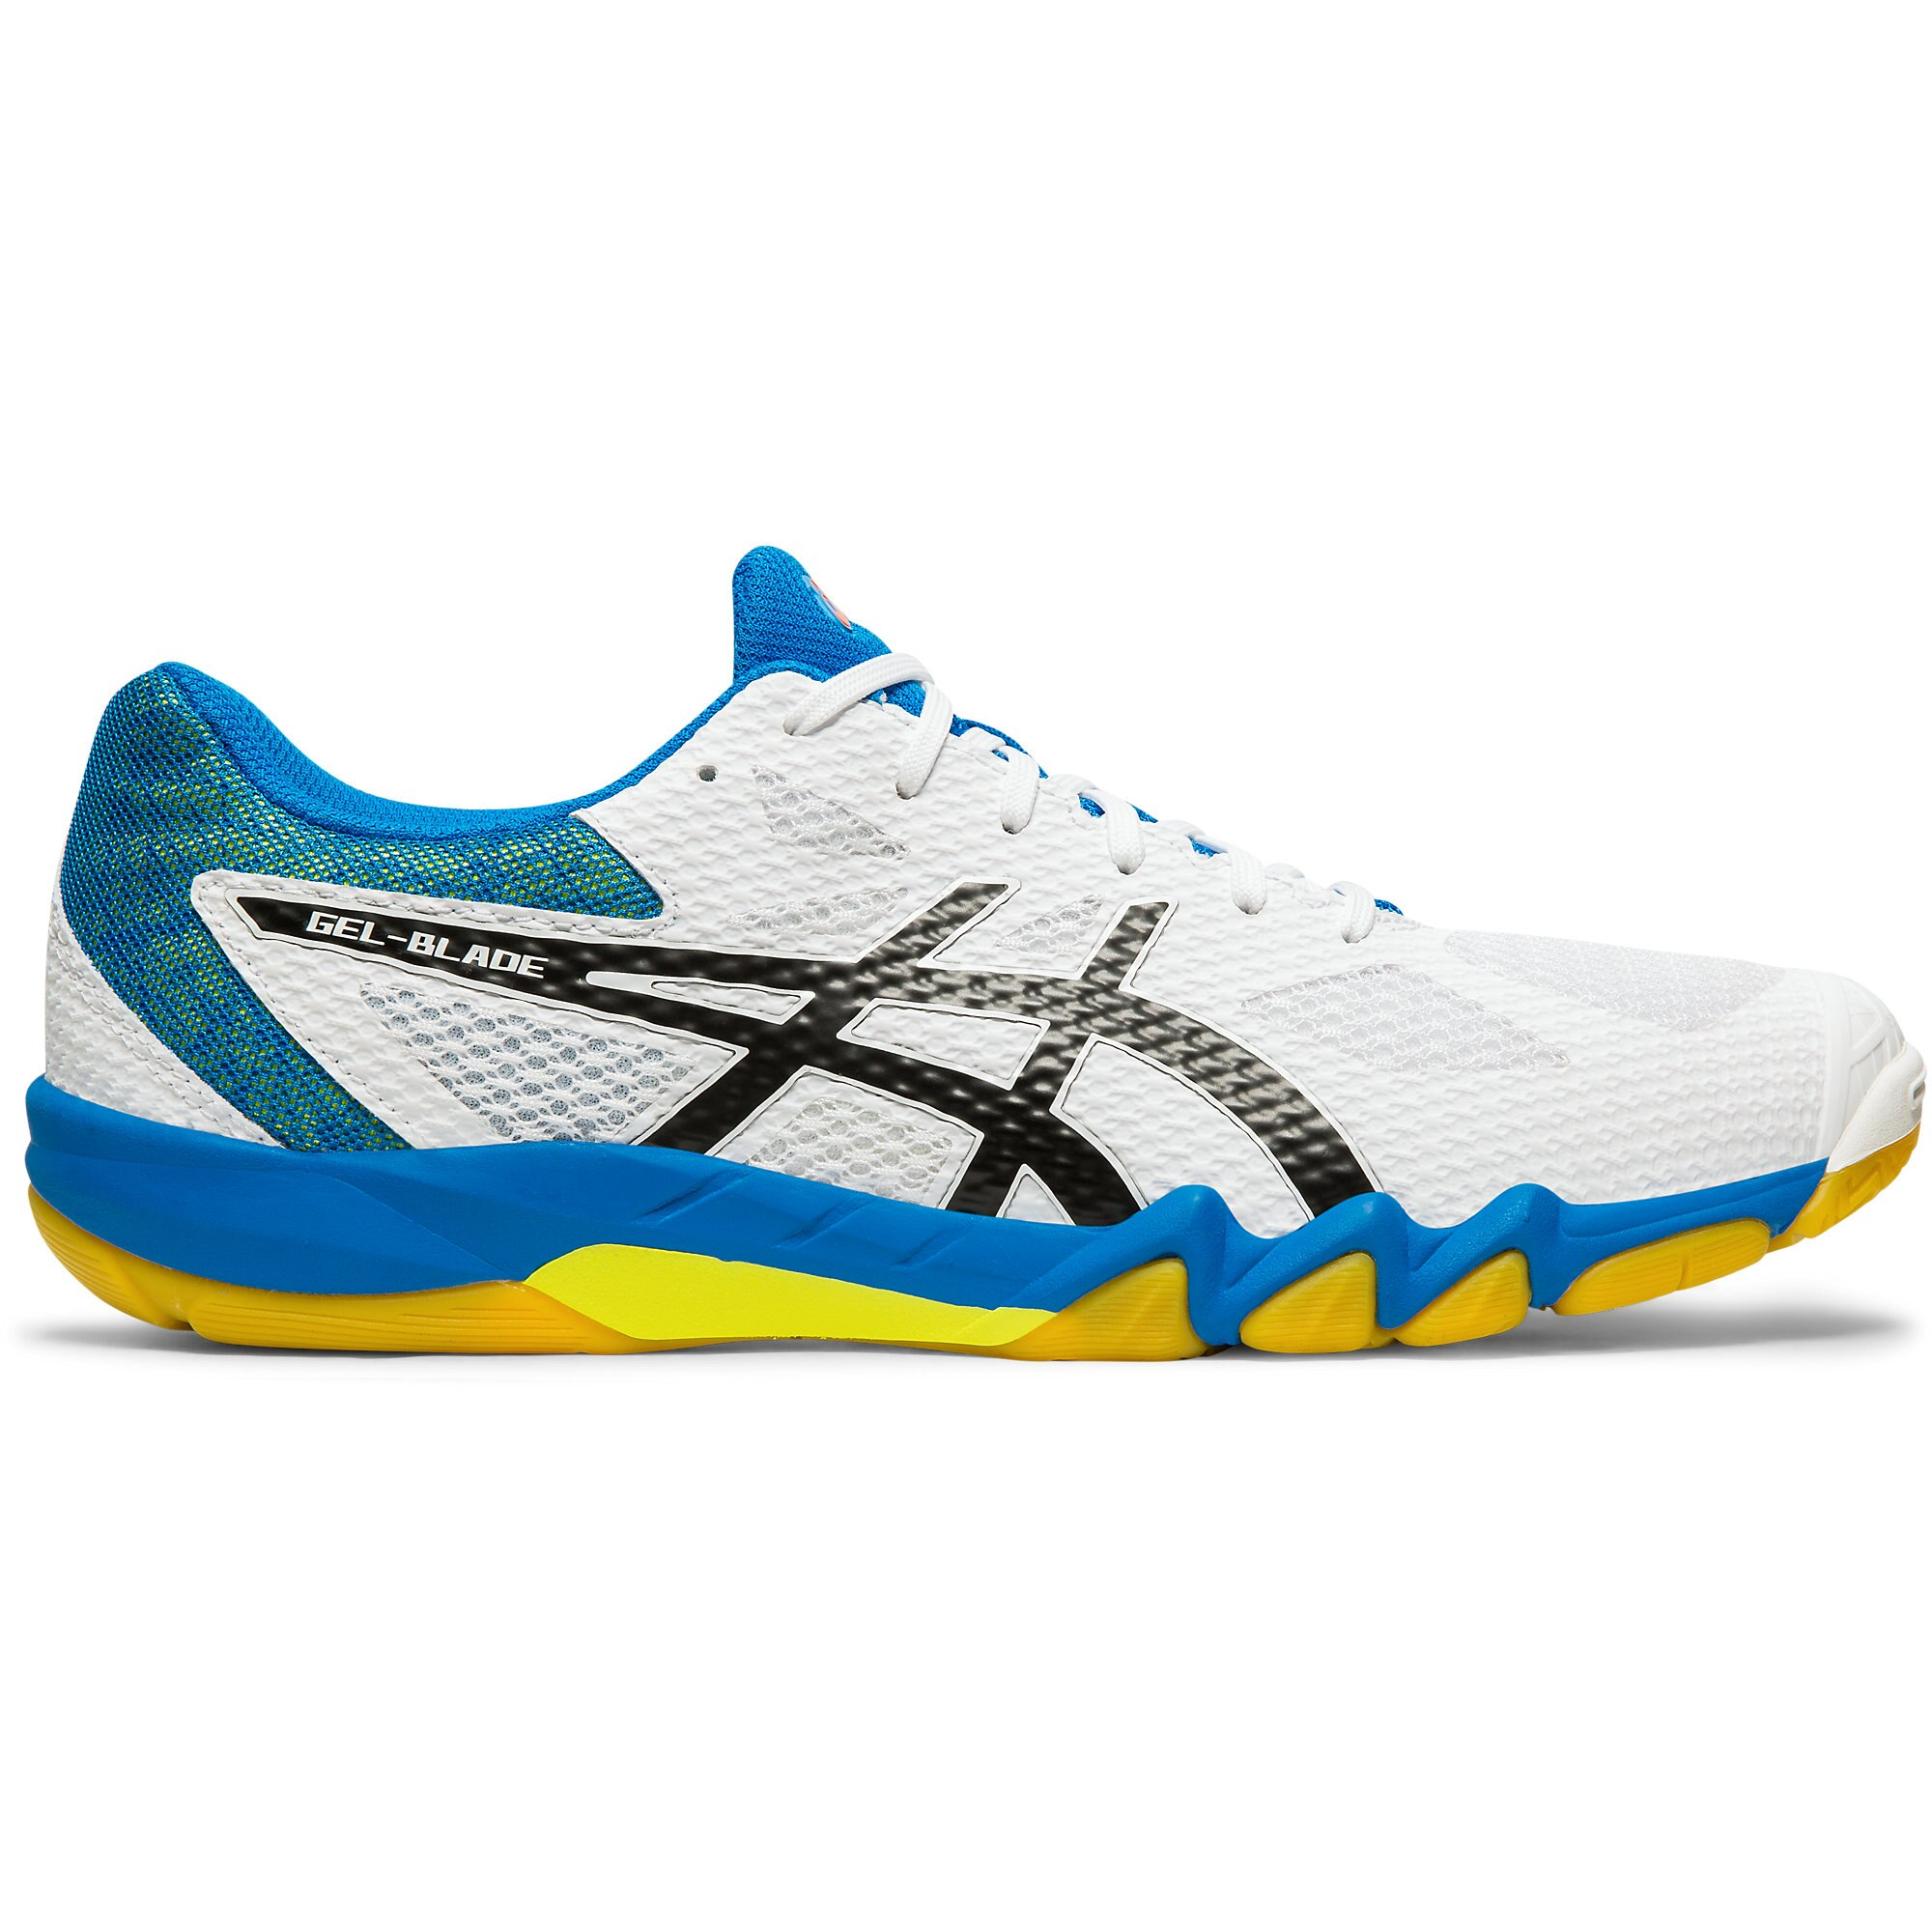 ASICS Gel Blade 7 White Black